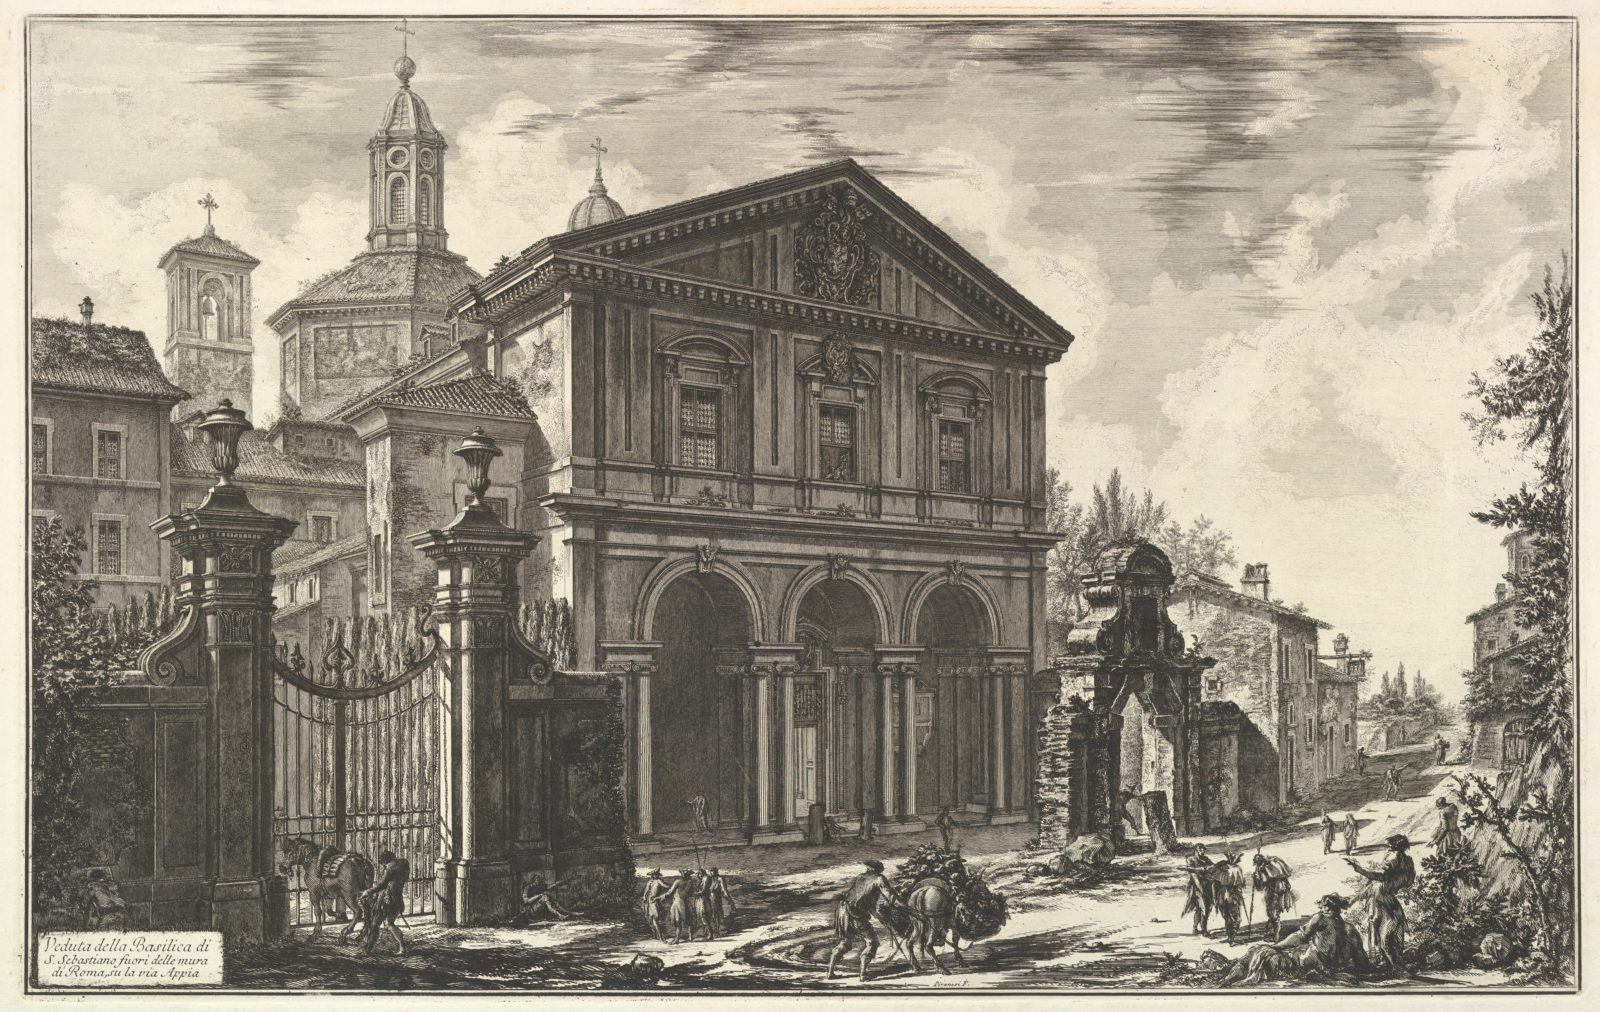 View of the Basilica of San Sebastiano fuori delle mura [St. Sebastian outside the Walls] on the Appian Way, from Vedute di Roma (Roman Views)